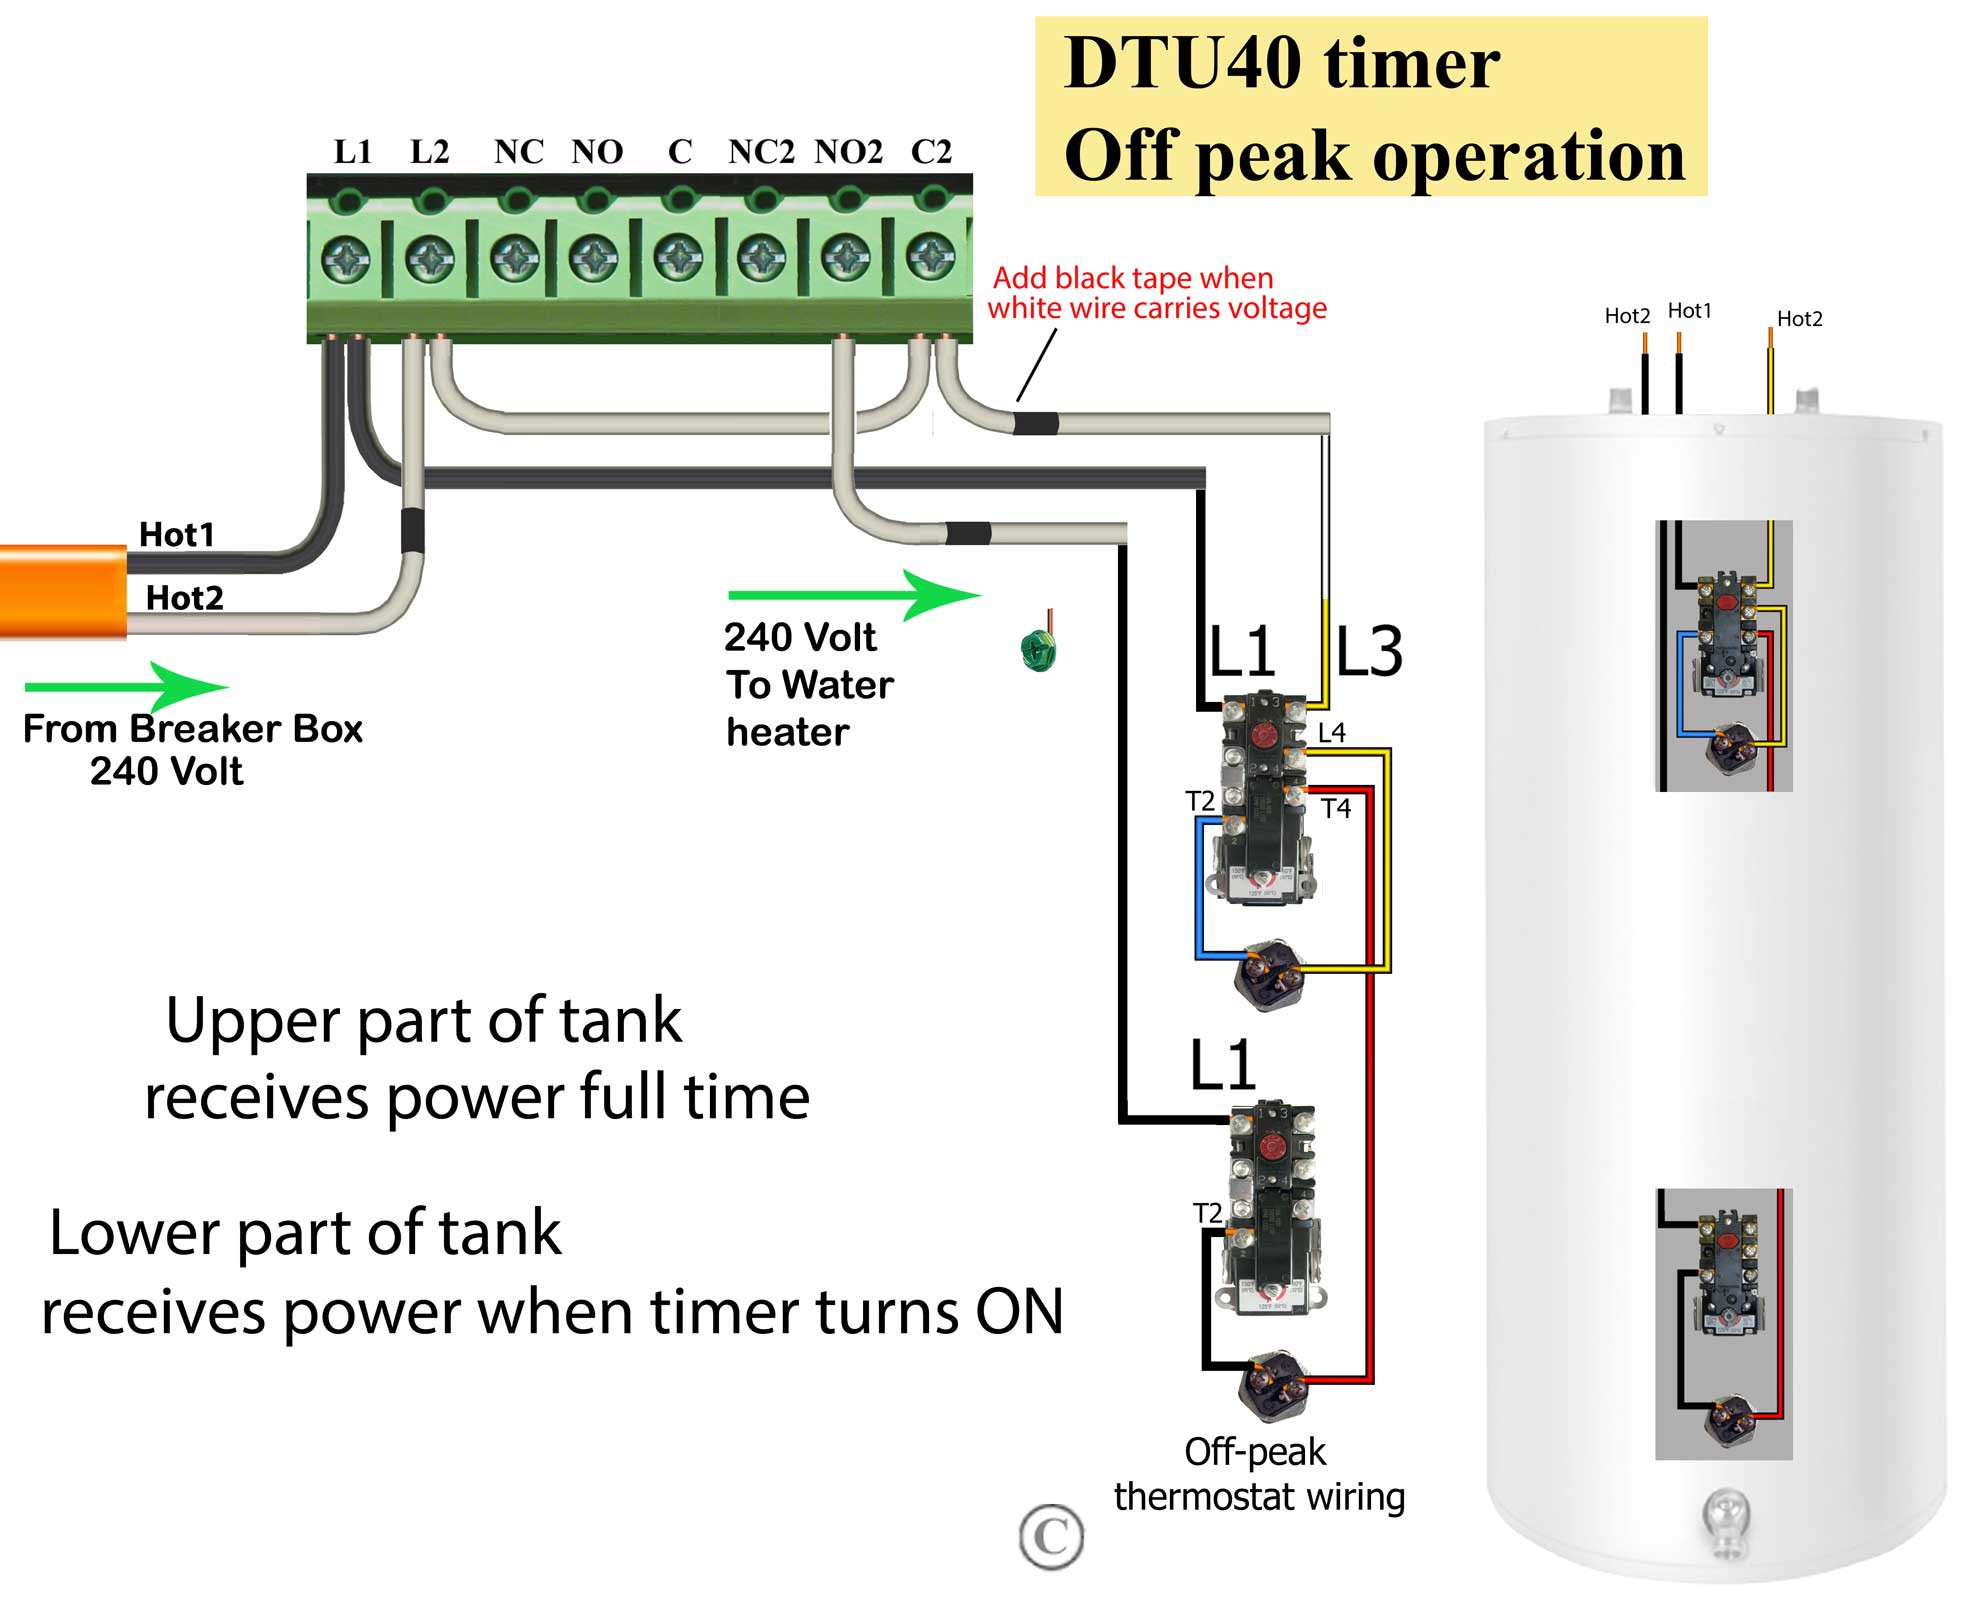 water heater timer wiring diagram Collection-Water Heater Wiring Diagram Dual Element Inspirational How to Wire Water Heater thermostats 18-g